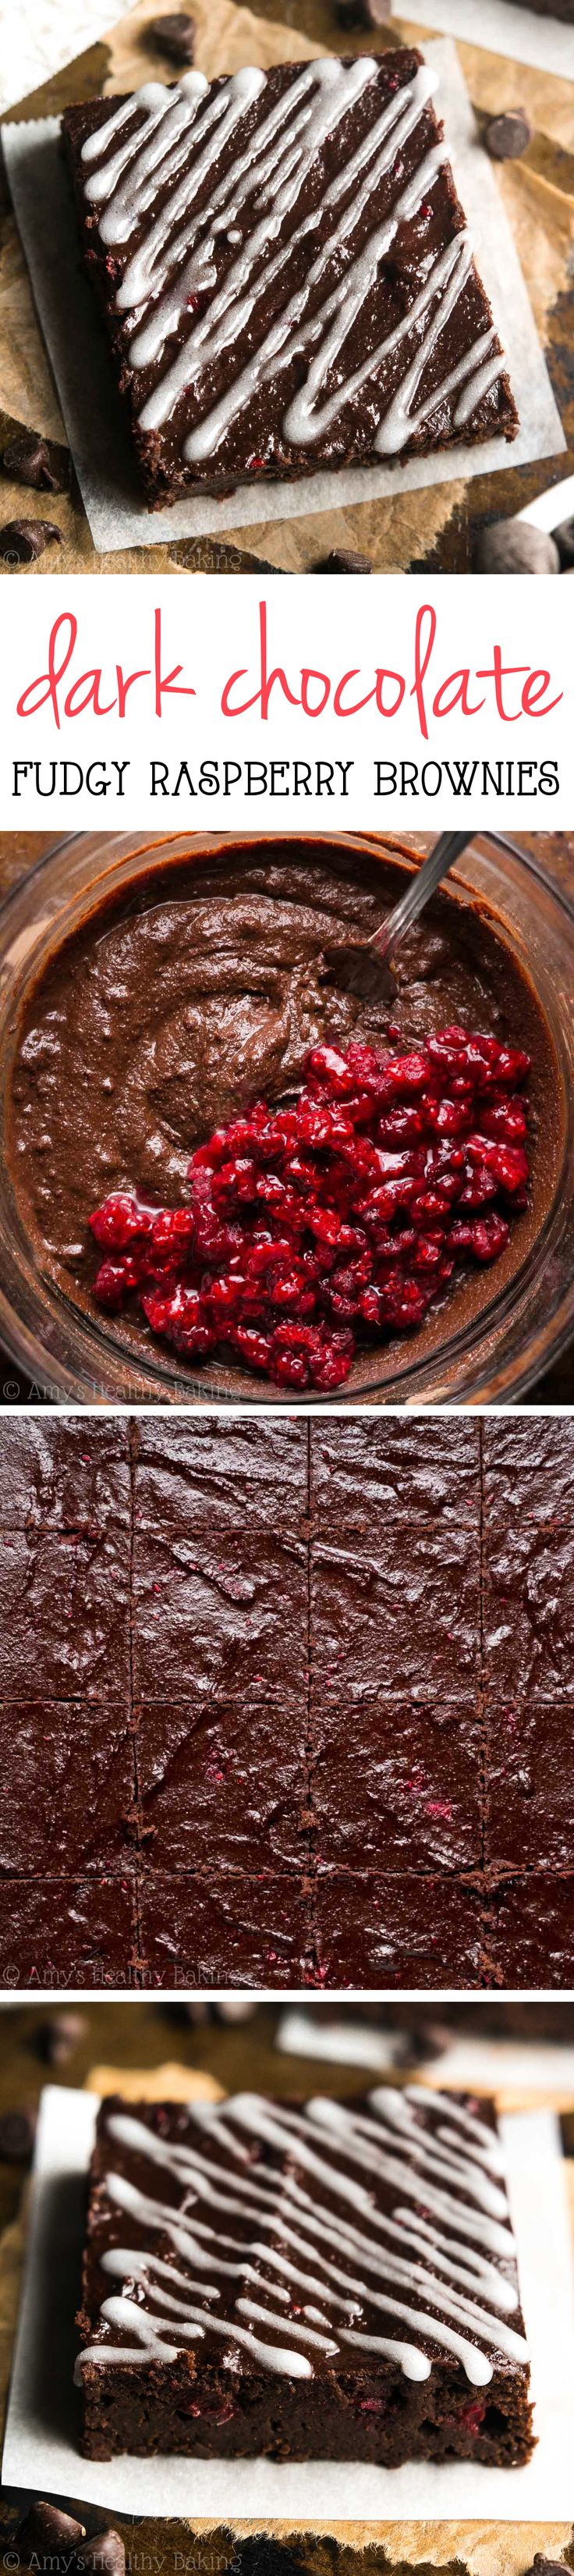 Healthy Raspberry Brownies Recipe! These fudgy homemade, from-scratch brownies are just as easy as a boxed mix! So rich & the BEST you'll ever eat -- but they're secretly skinny & guilt-free! | easy raspberry brownies | brownies from scratch | healthy homemade brownies recipe